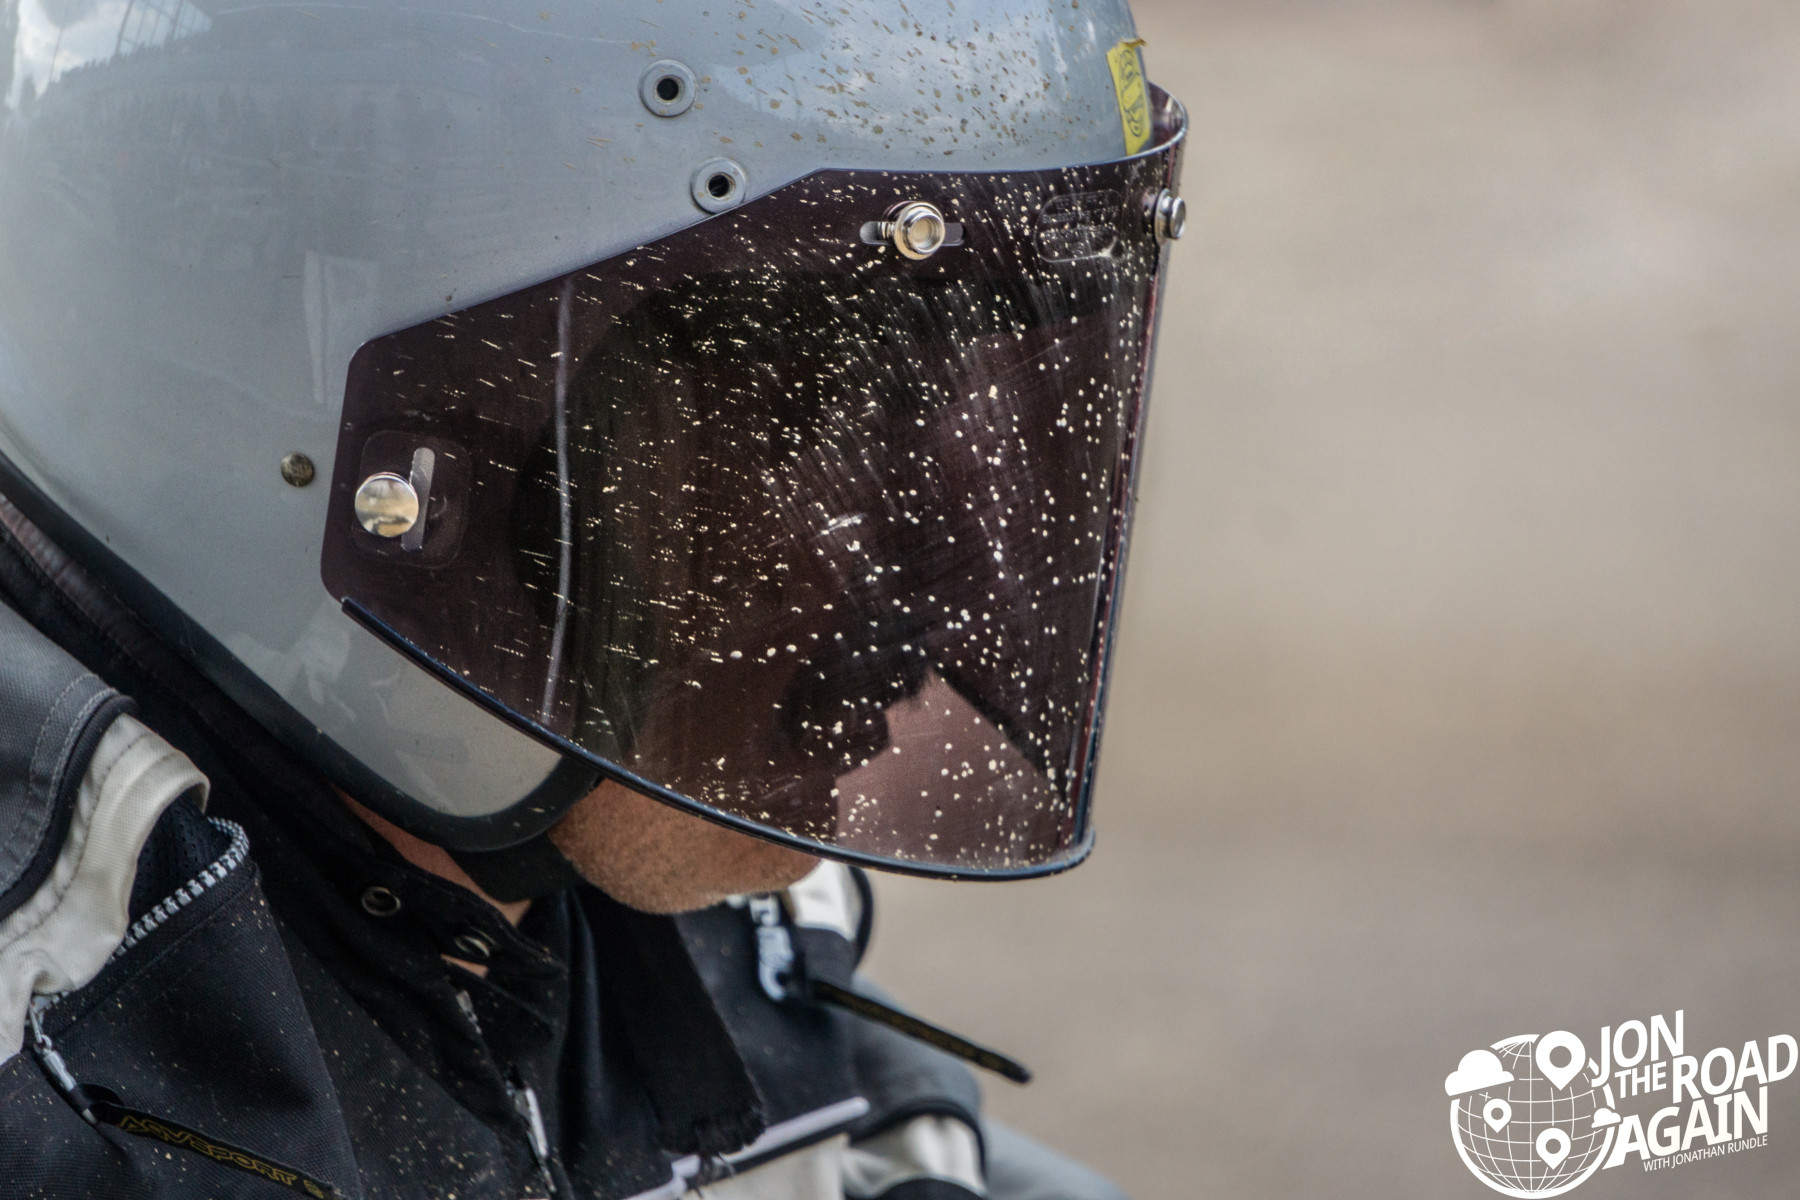 Flat track motorcycle racer's face shield at Ashland fairgrounds during AMA Vintage Motorcycle Days